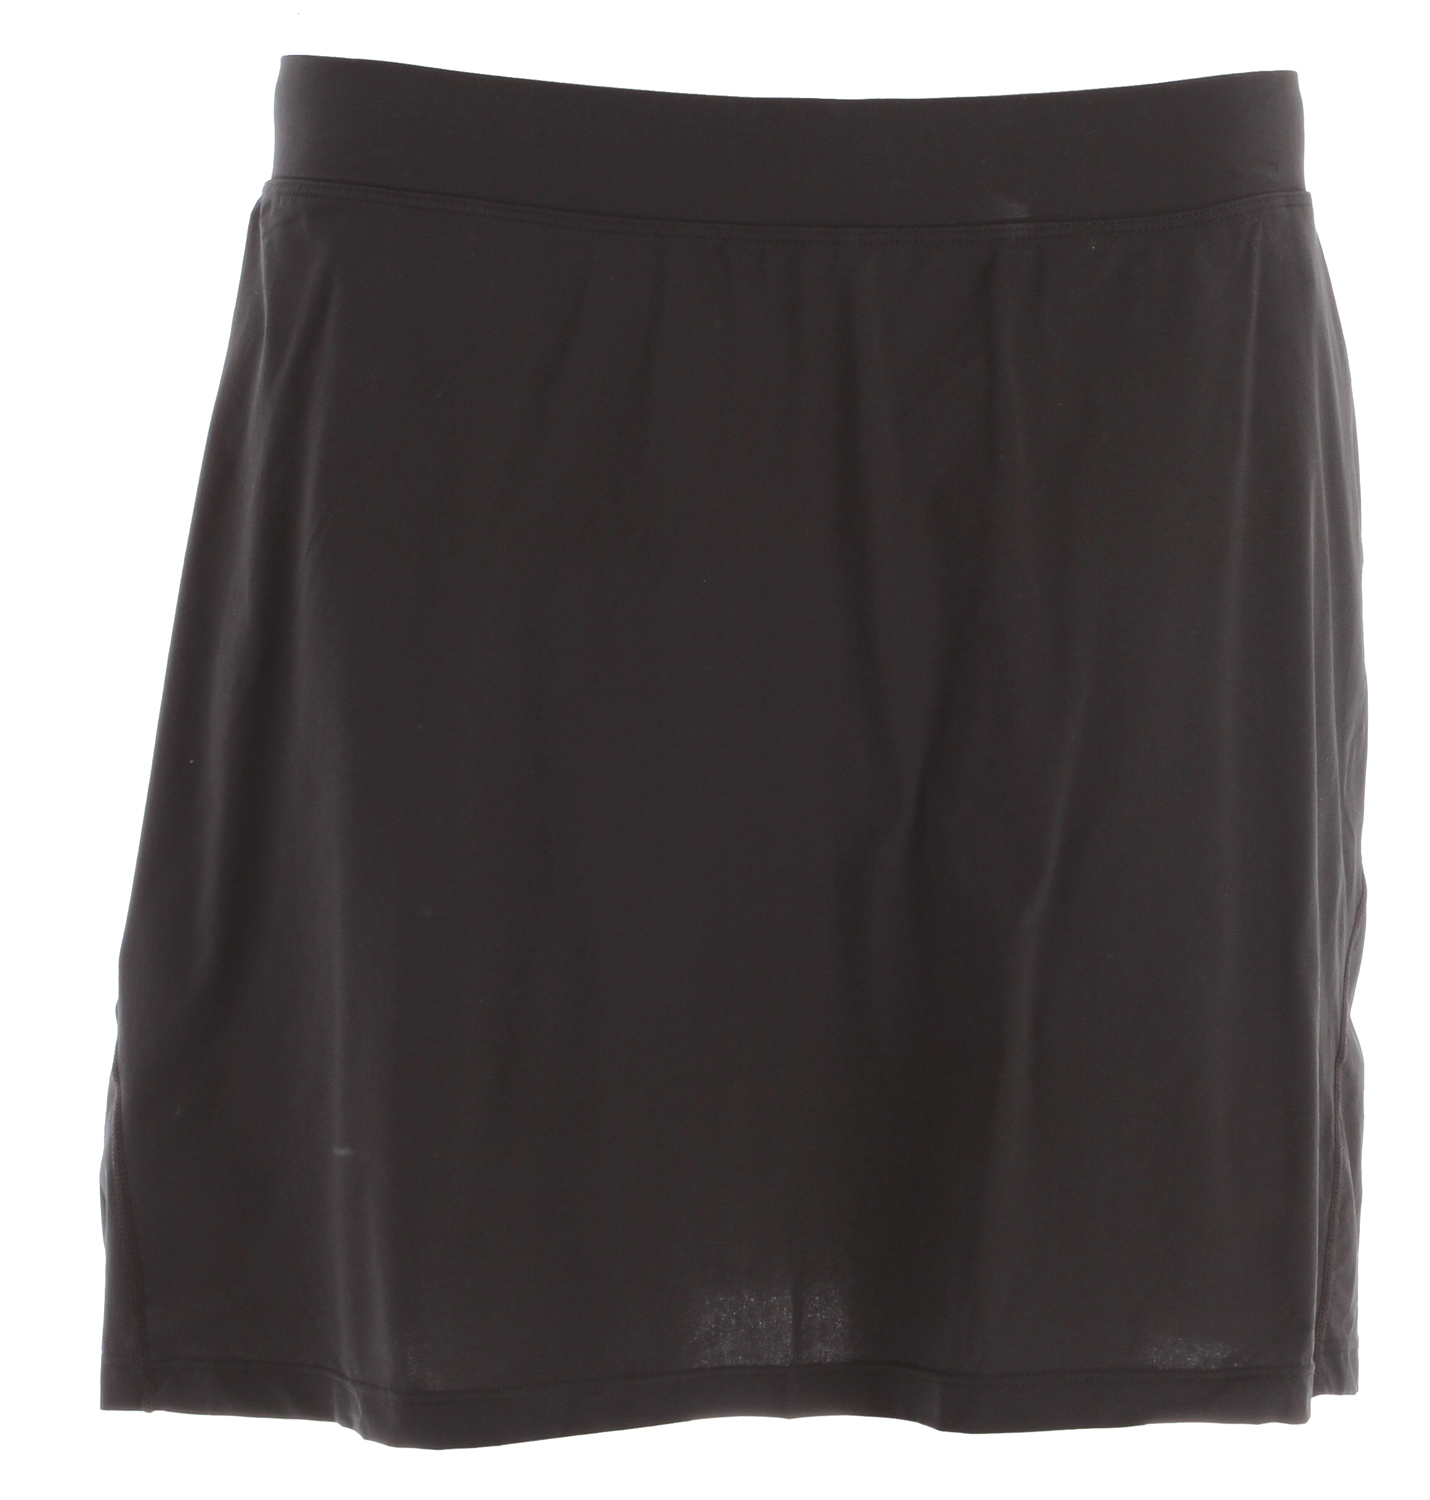 "The Womens Marmot Velox Skort Skirt is perfect for casual or athletic wear. It means that now, you can go straight from the gym to the party! You'll have no issues going for a swim and getting right out and have your BBQ dinner. The polygiene finish makes it dry super-fast and also eliminates odor so you don't smell like a hot mess. The small key pocket makes it handy to keep small valuables like locker keys and ID.  Light Weight, Breathable, Stretch Woven Performance Fabric    Polygiene Technology Finish which Gives Permanent Odor  Management    Ultraviolet Protection Factor (UPF  50    Abrasion Resistant Nylon    Interior Short has Inseam Gusset for Increased  Mobility    Interior Key Pocket    Flat-Locked Seams for Added Comfort    Reflective Logos    Skort Outseam: 15"" Short Inseam 4""    Weight  0lbs 4.8oz (136.1g     Materials  84% Nylon/16% Elastane Plain Weave 2.4 oz/yd / 80% Nylon/20% Elastane with Polygiene Technology 7.1 oz/yd      Fit  Athletic Fit - $40.95"